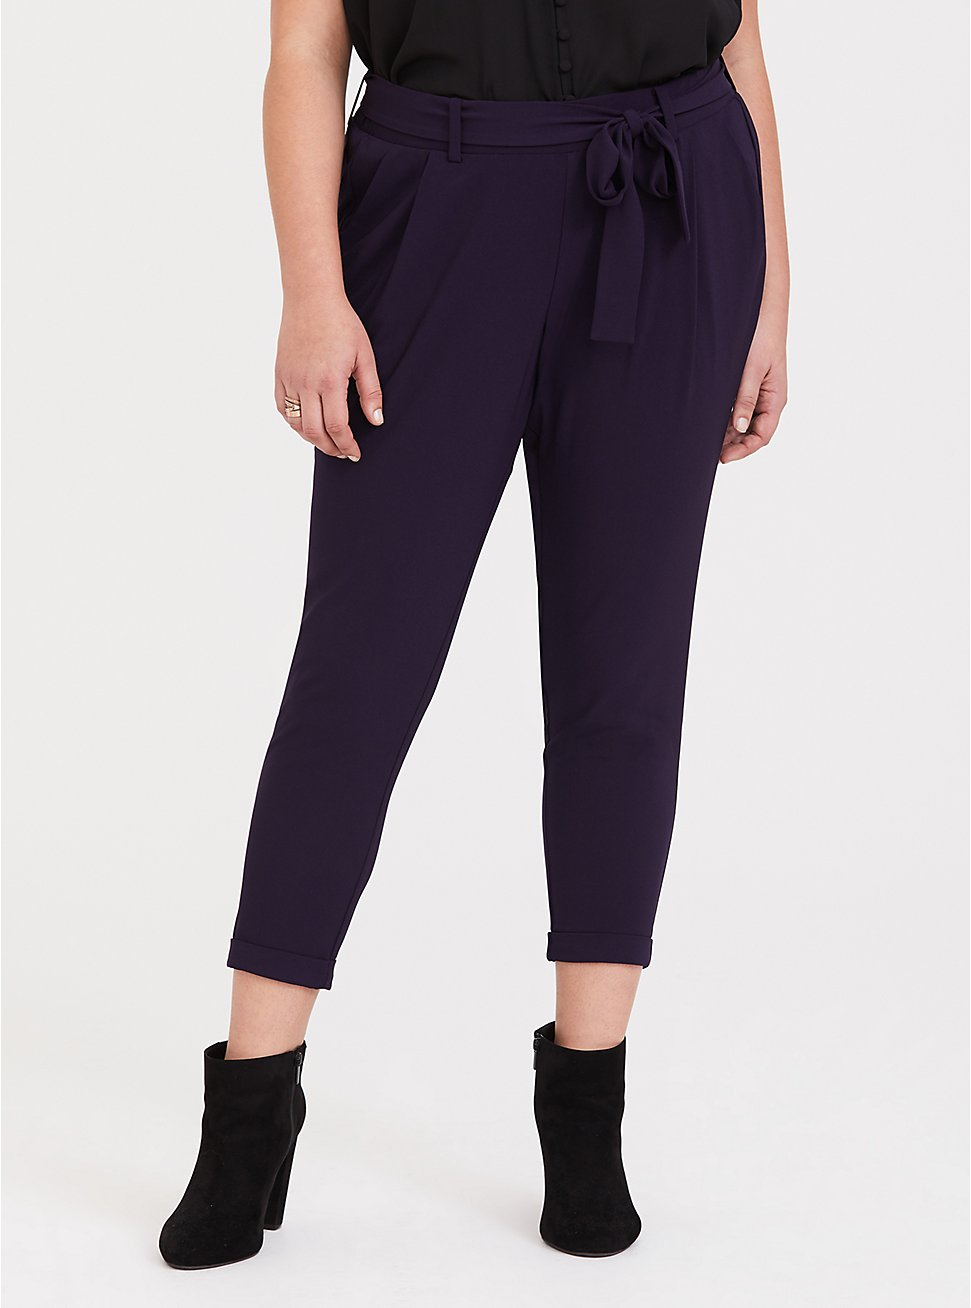 Purple Tie Front Tapered Pant, PURPLE REIGN, hi-res